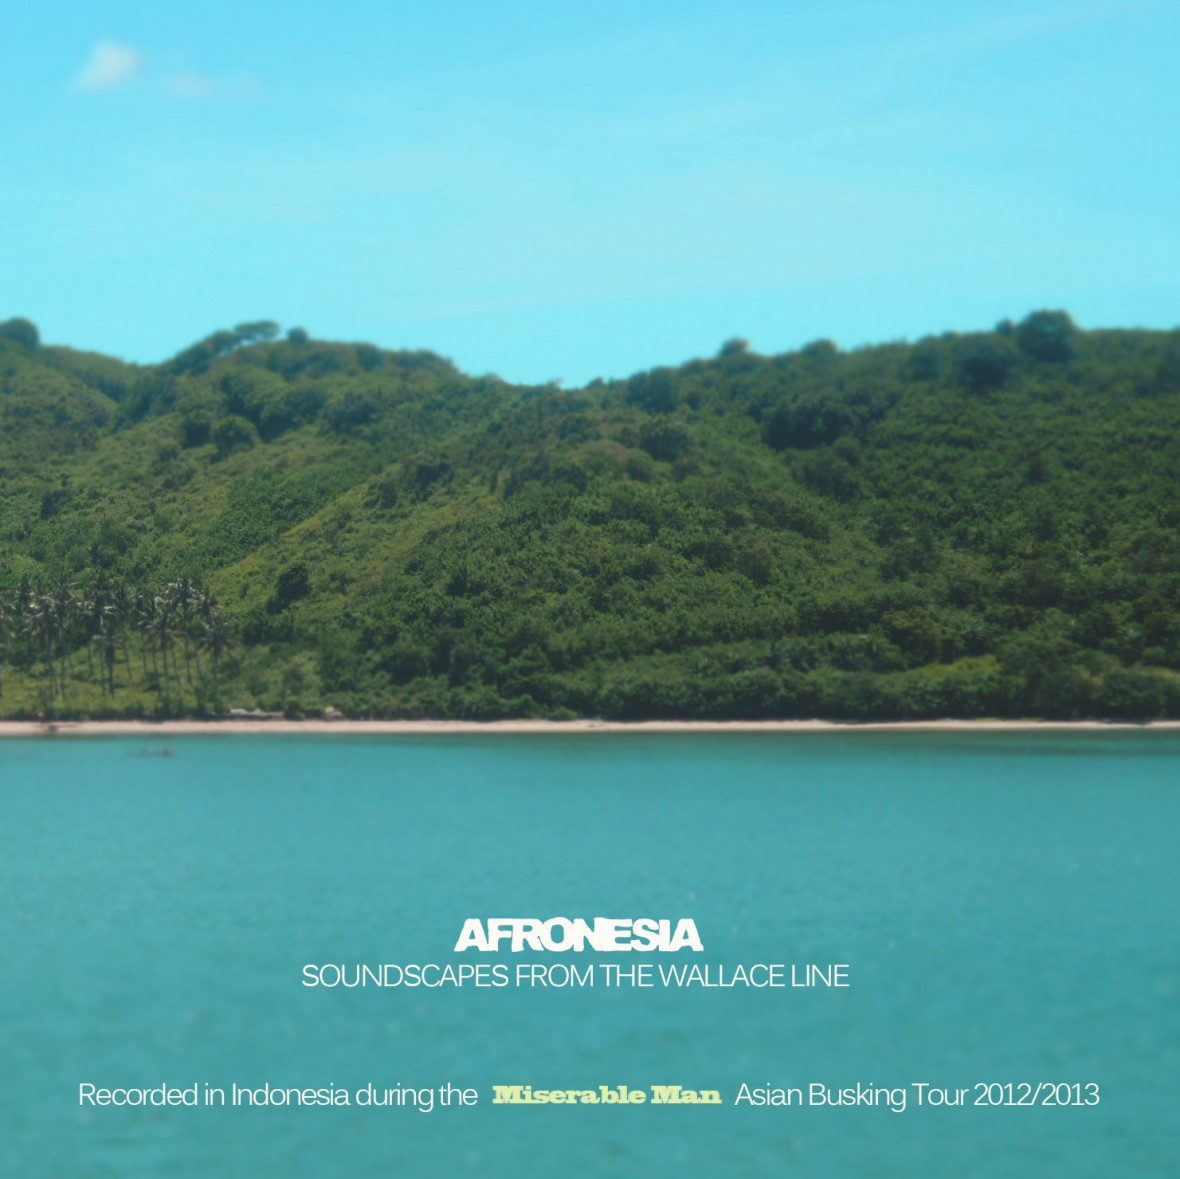 AFRONESIA CD ARTWORK WEB